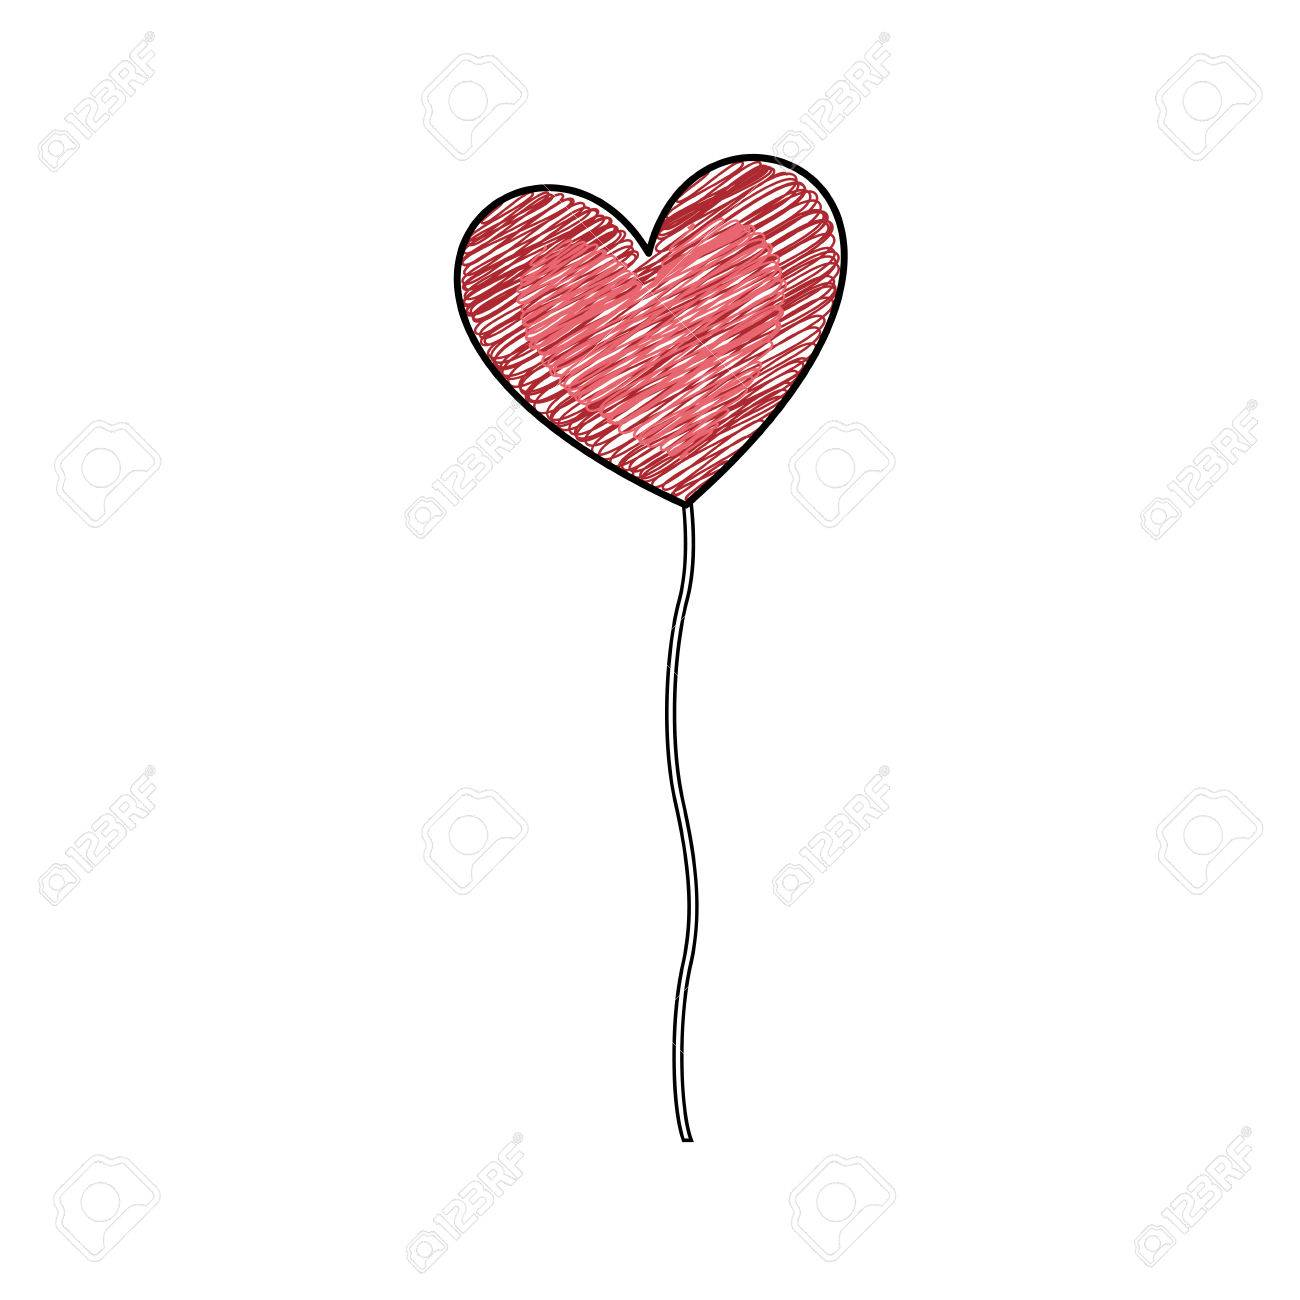 Color pencil drawing of balloon in shape of heart vector illustration stock vector 76788232